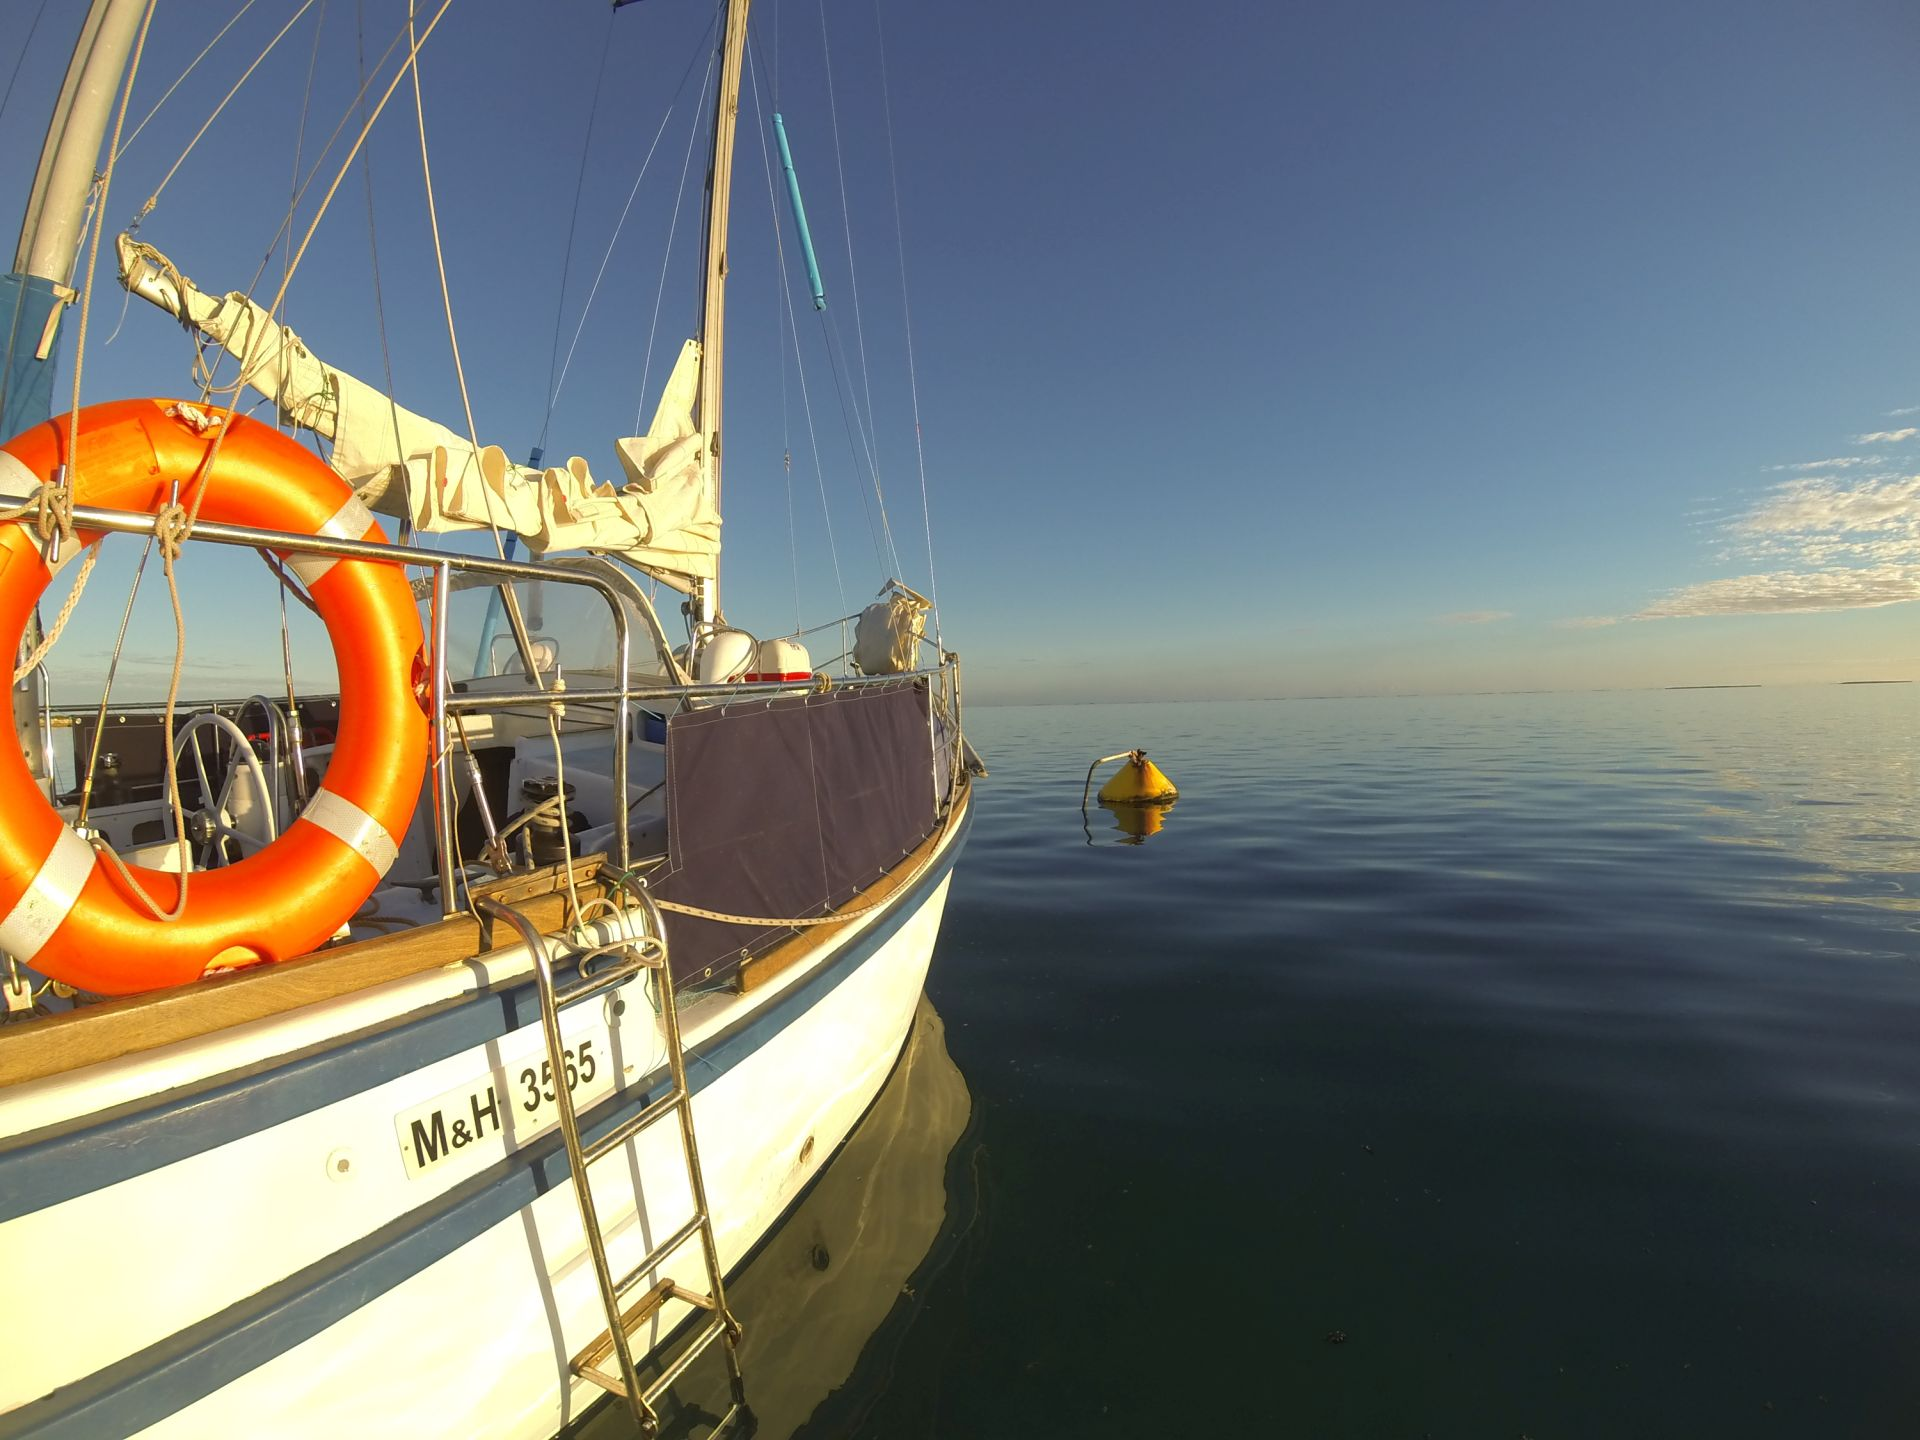 anchorage in Abrolhos